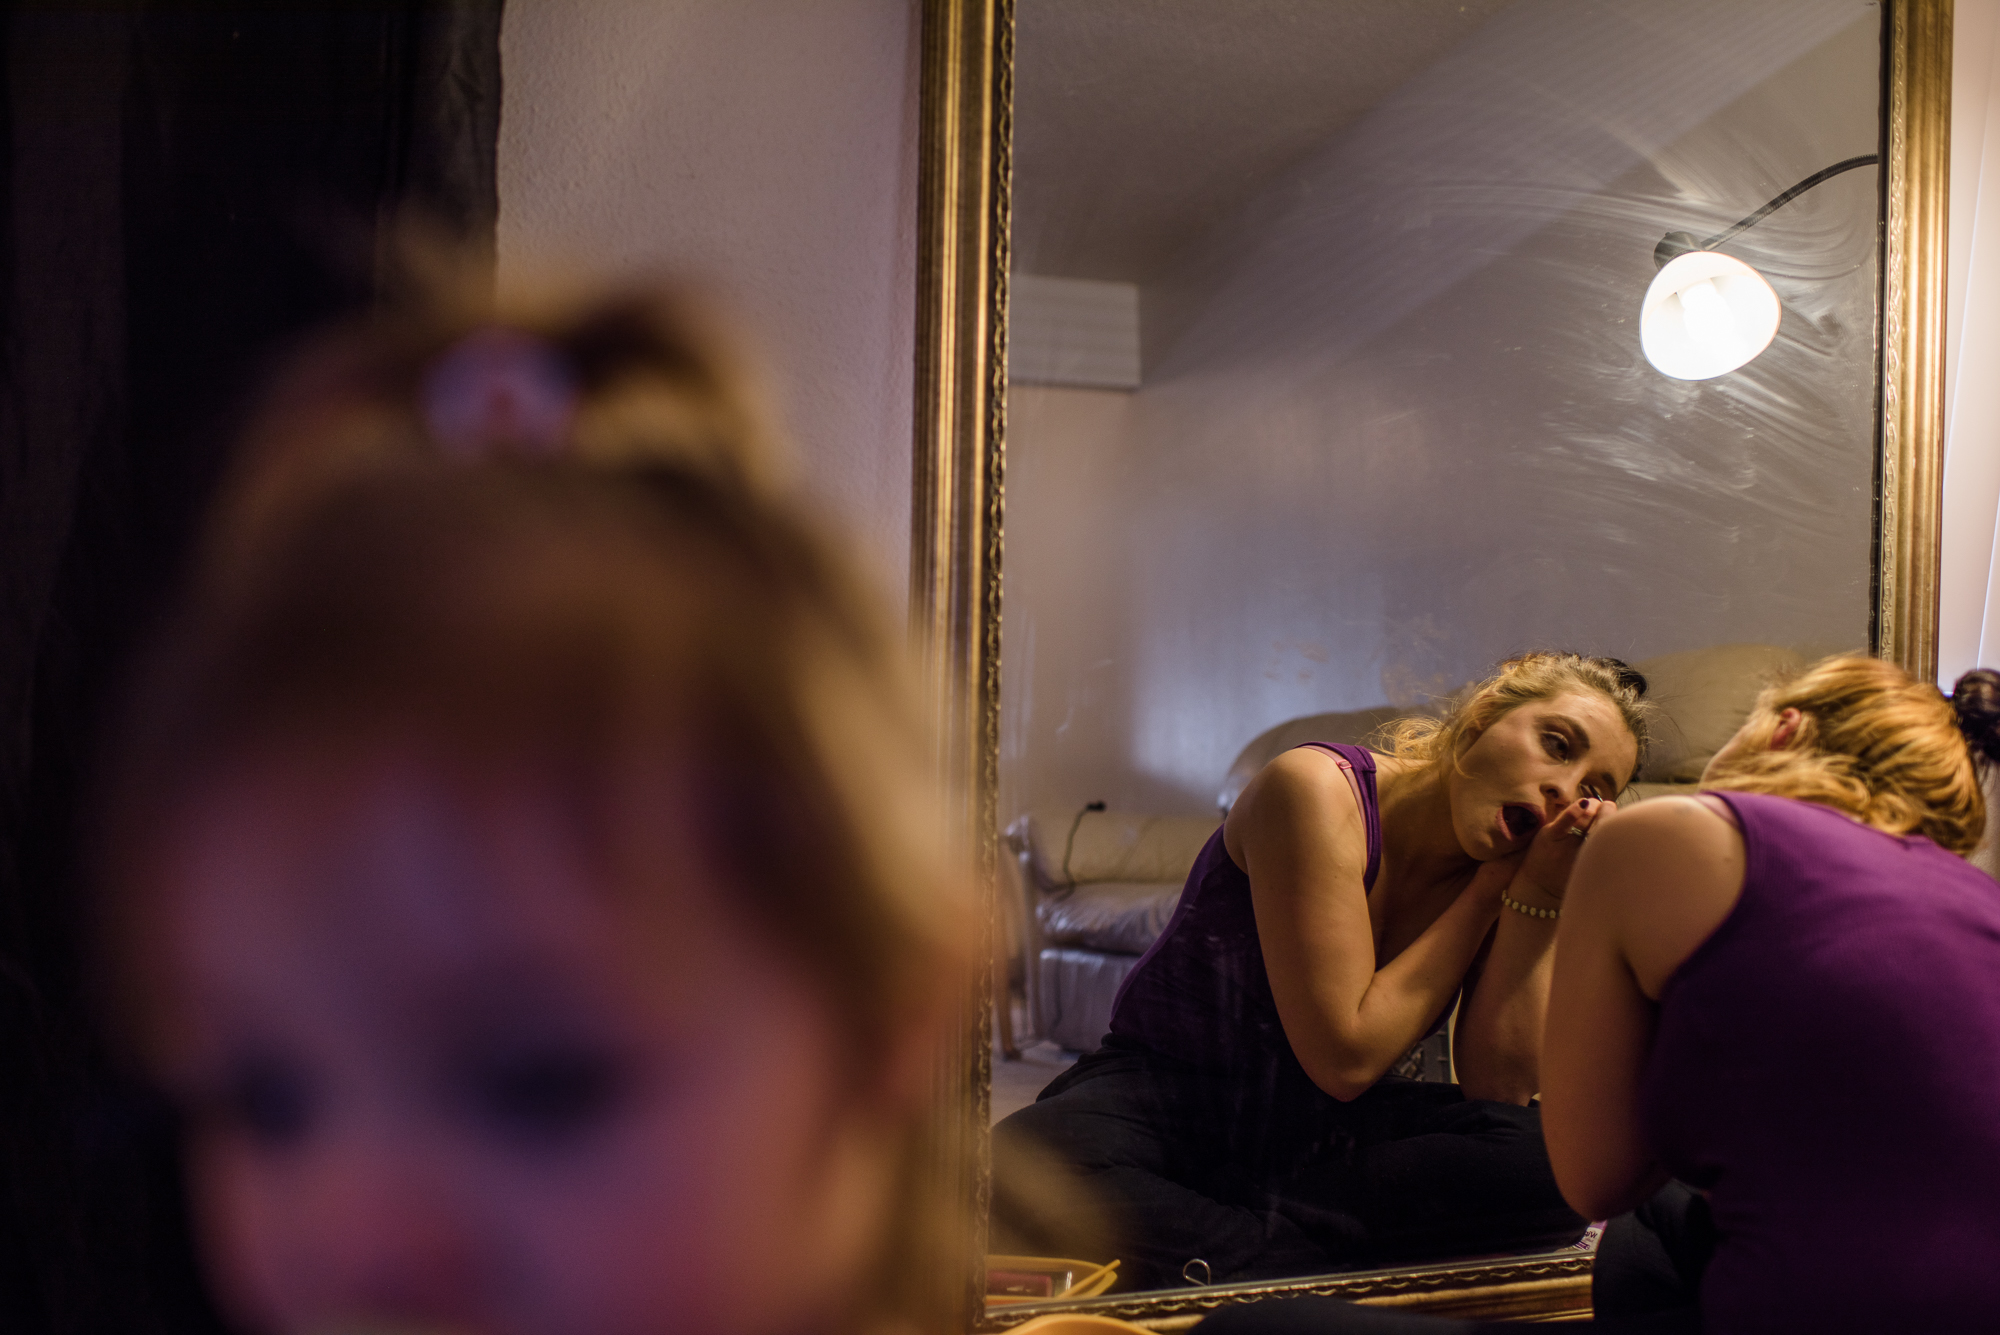 Alysia, age 20, puts on makeup in the morning, as her daughter, Leticia, stands beside her.